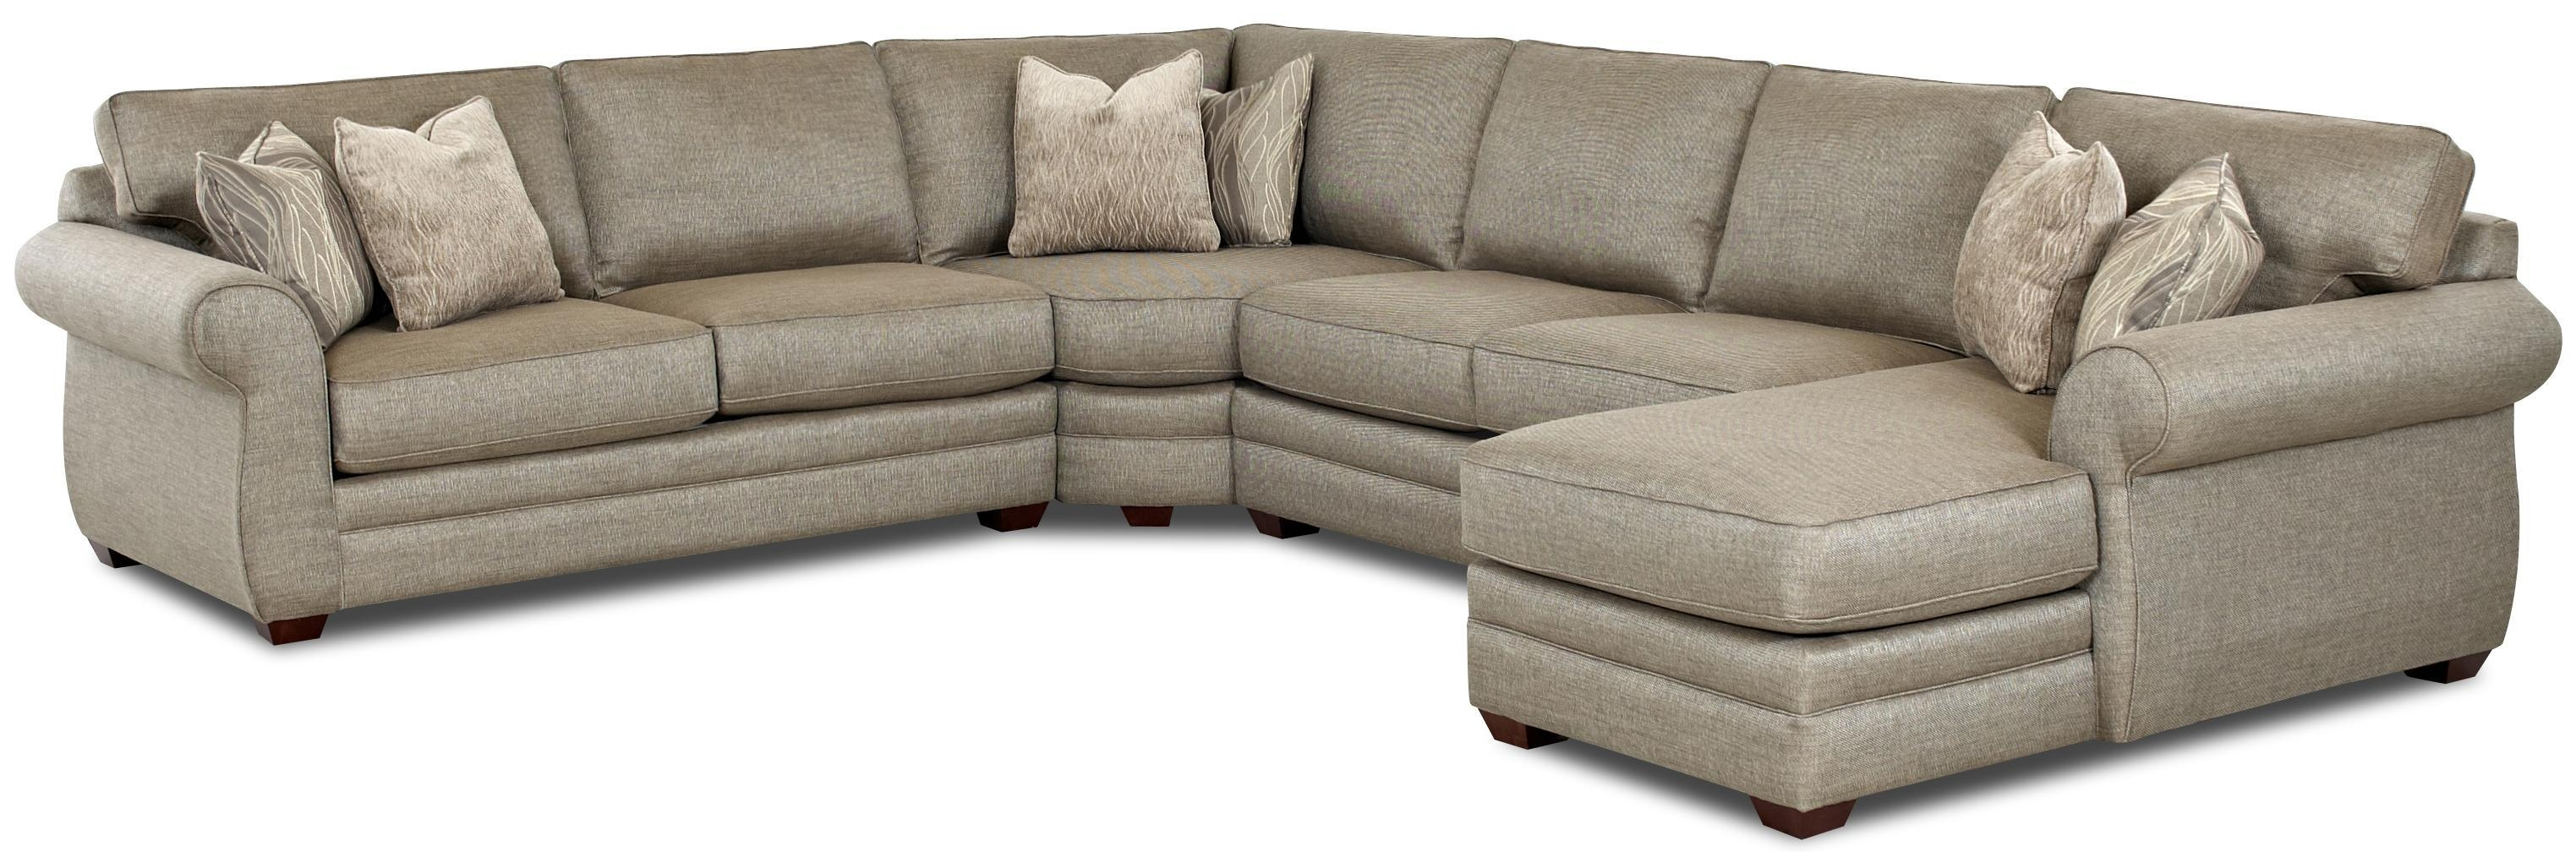 Sofas Tampa With Sofas Tampa (View 6 of 20)